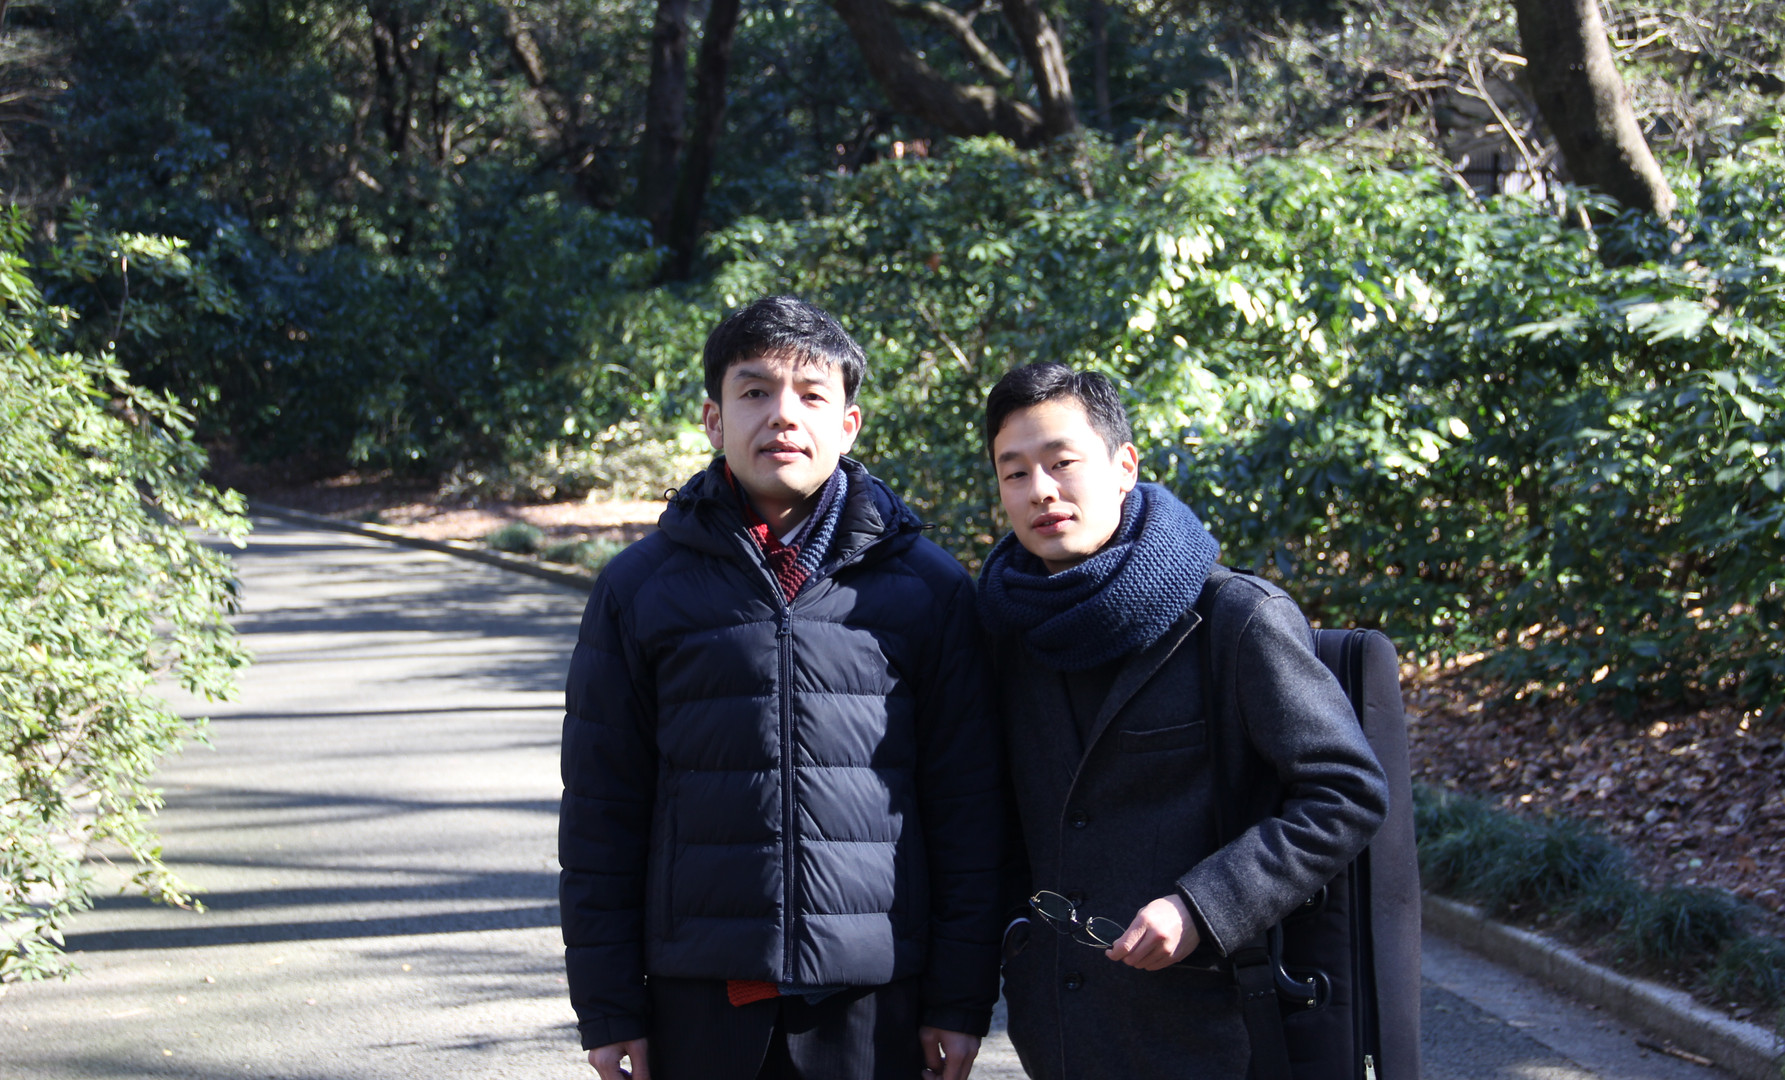 With my best friend Yuske Tagaya, at Shinjyuku Gyoen Park